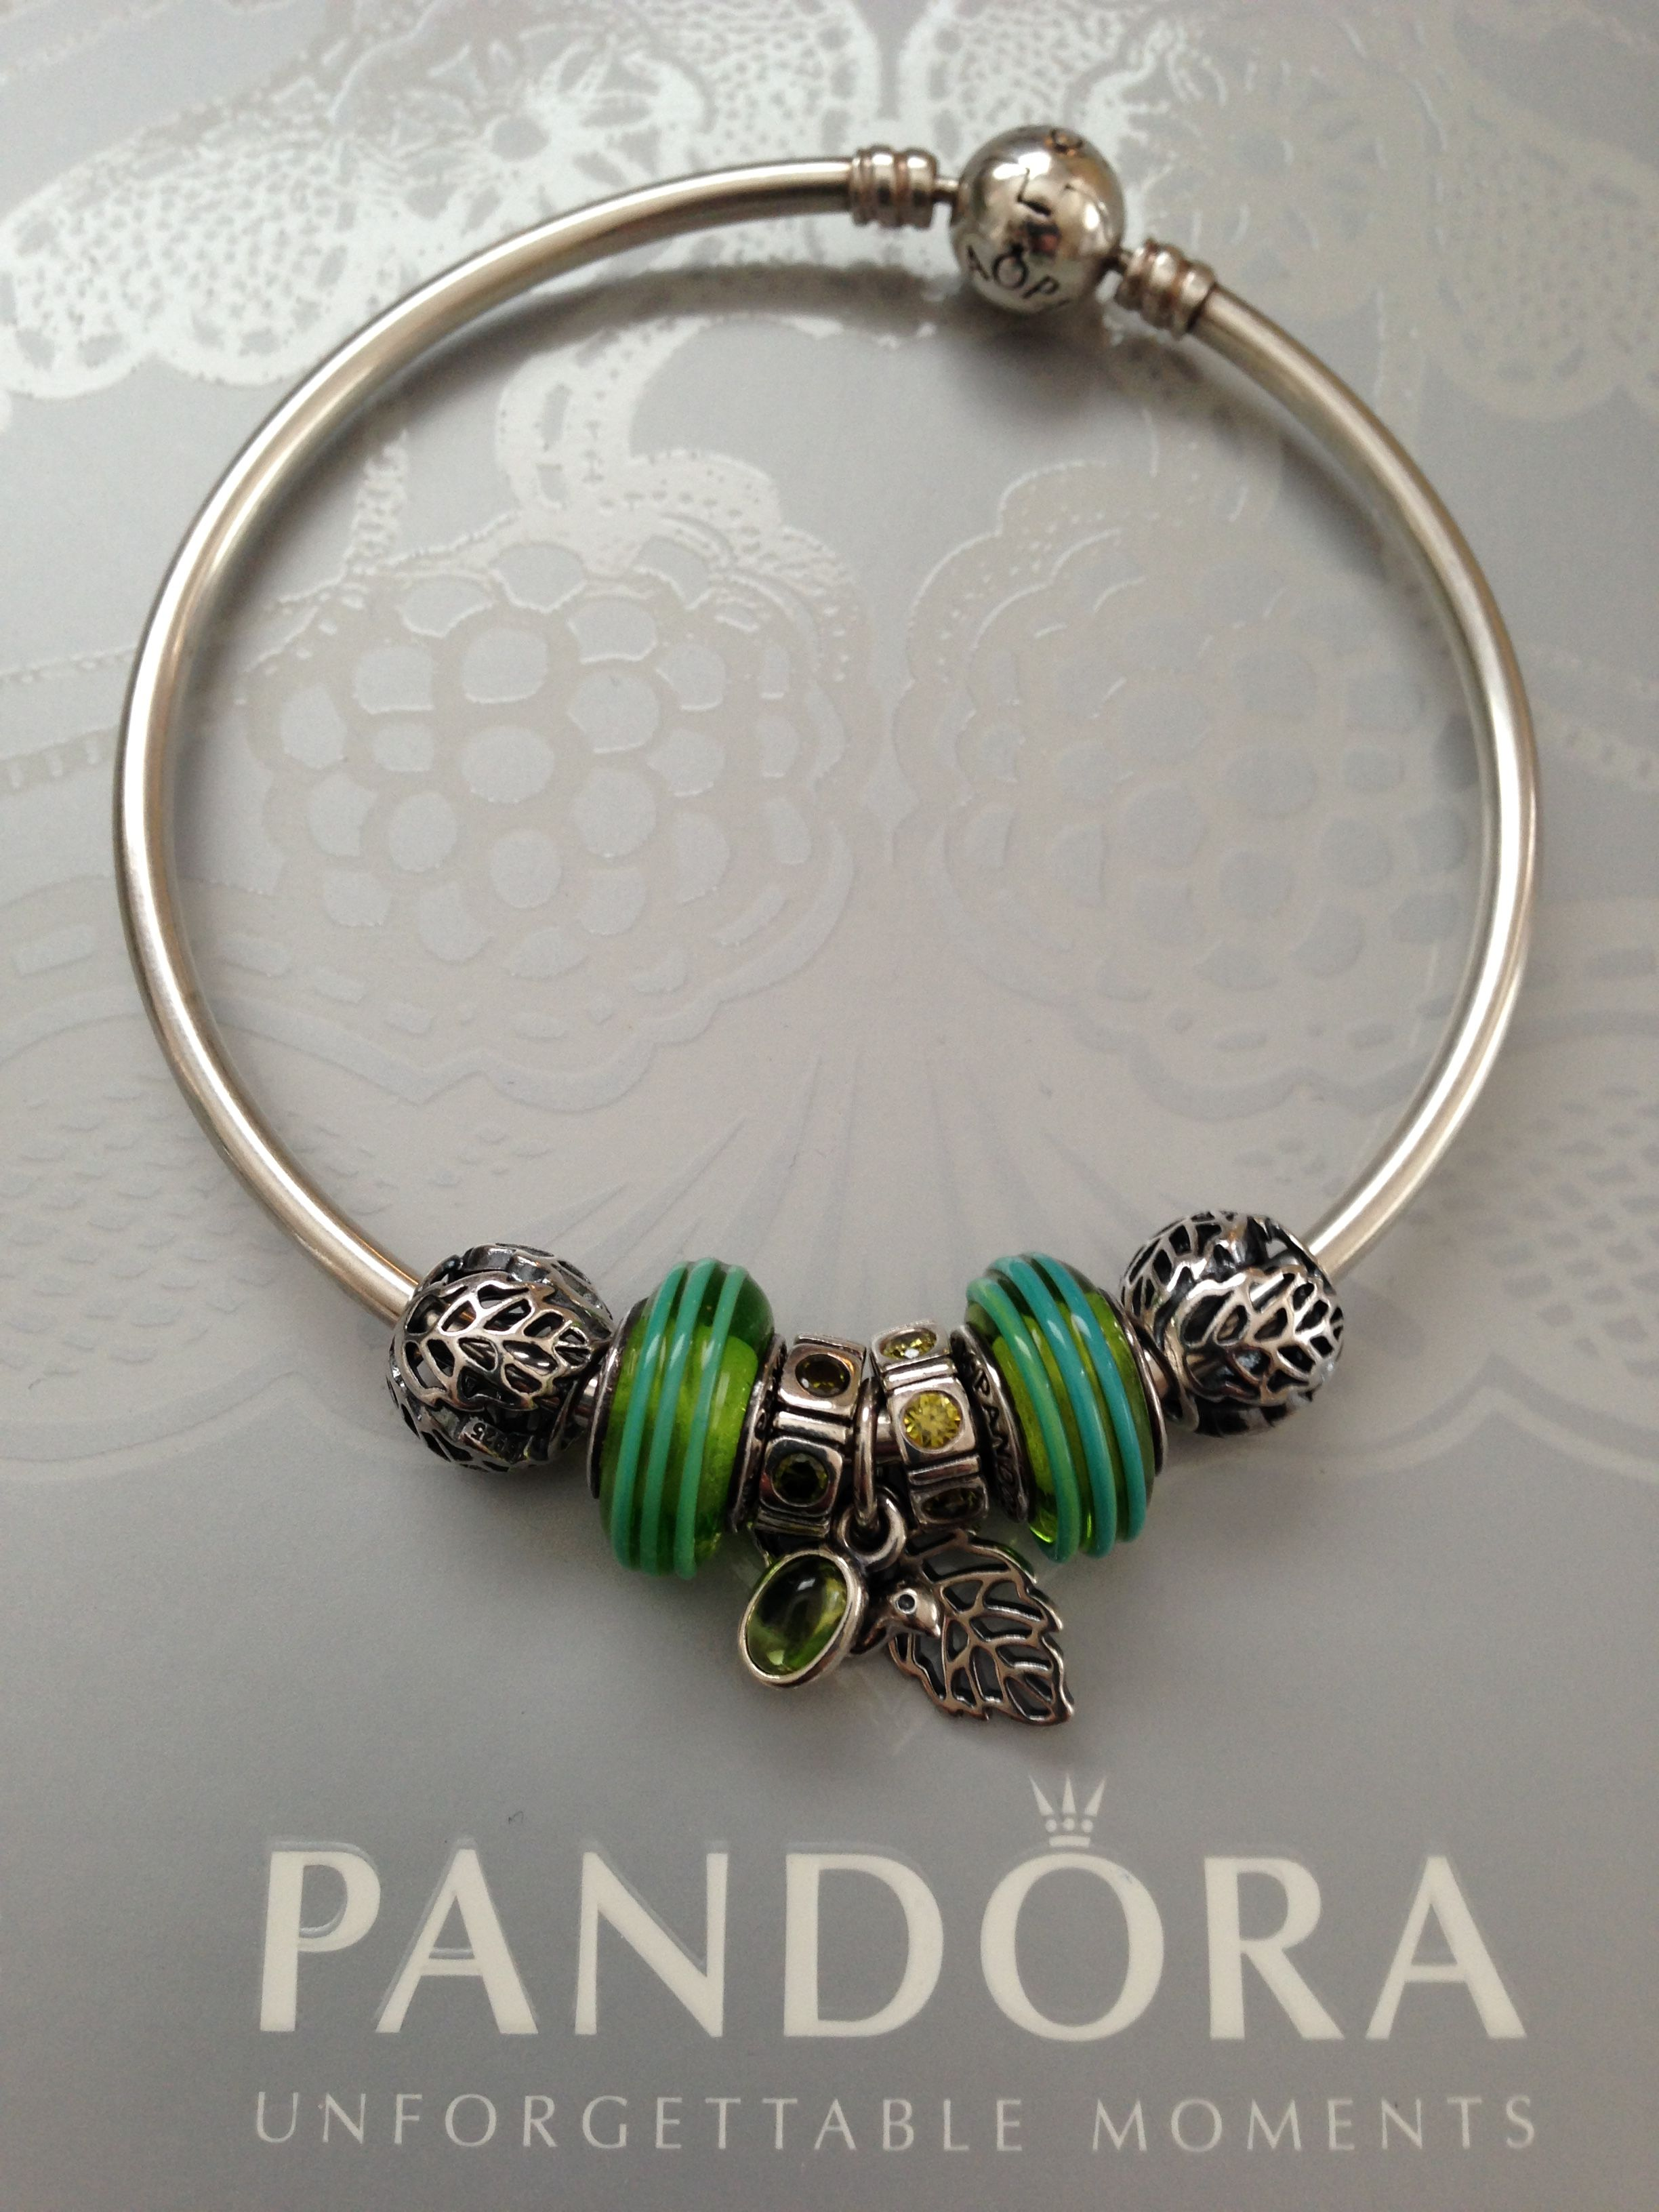 stores bangles addict so late pandora for in most it the will bangle released available news concept exclusively america north march charms be not on likely breaking around